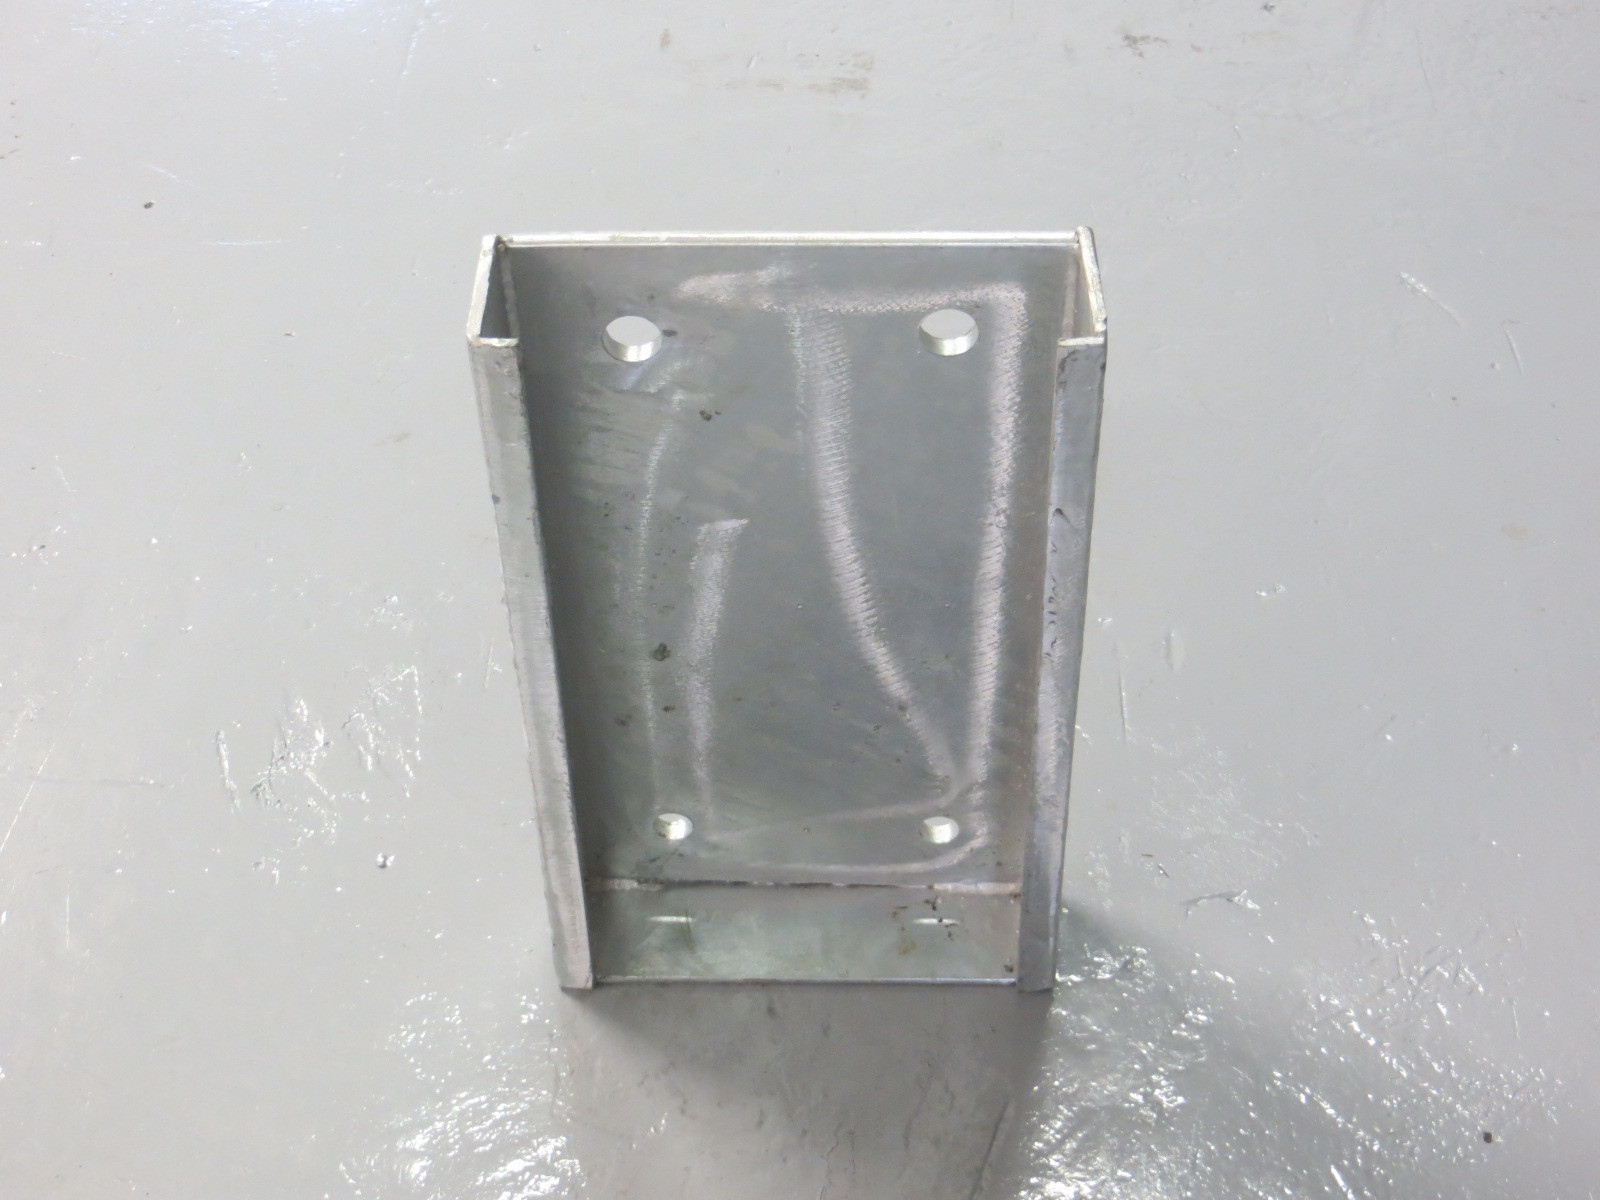 A054 Dock Bumper Back Plate